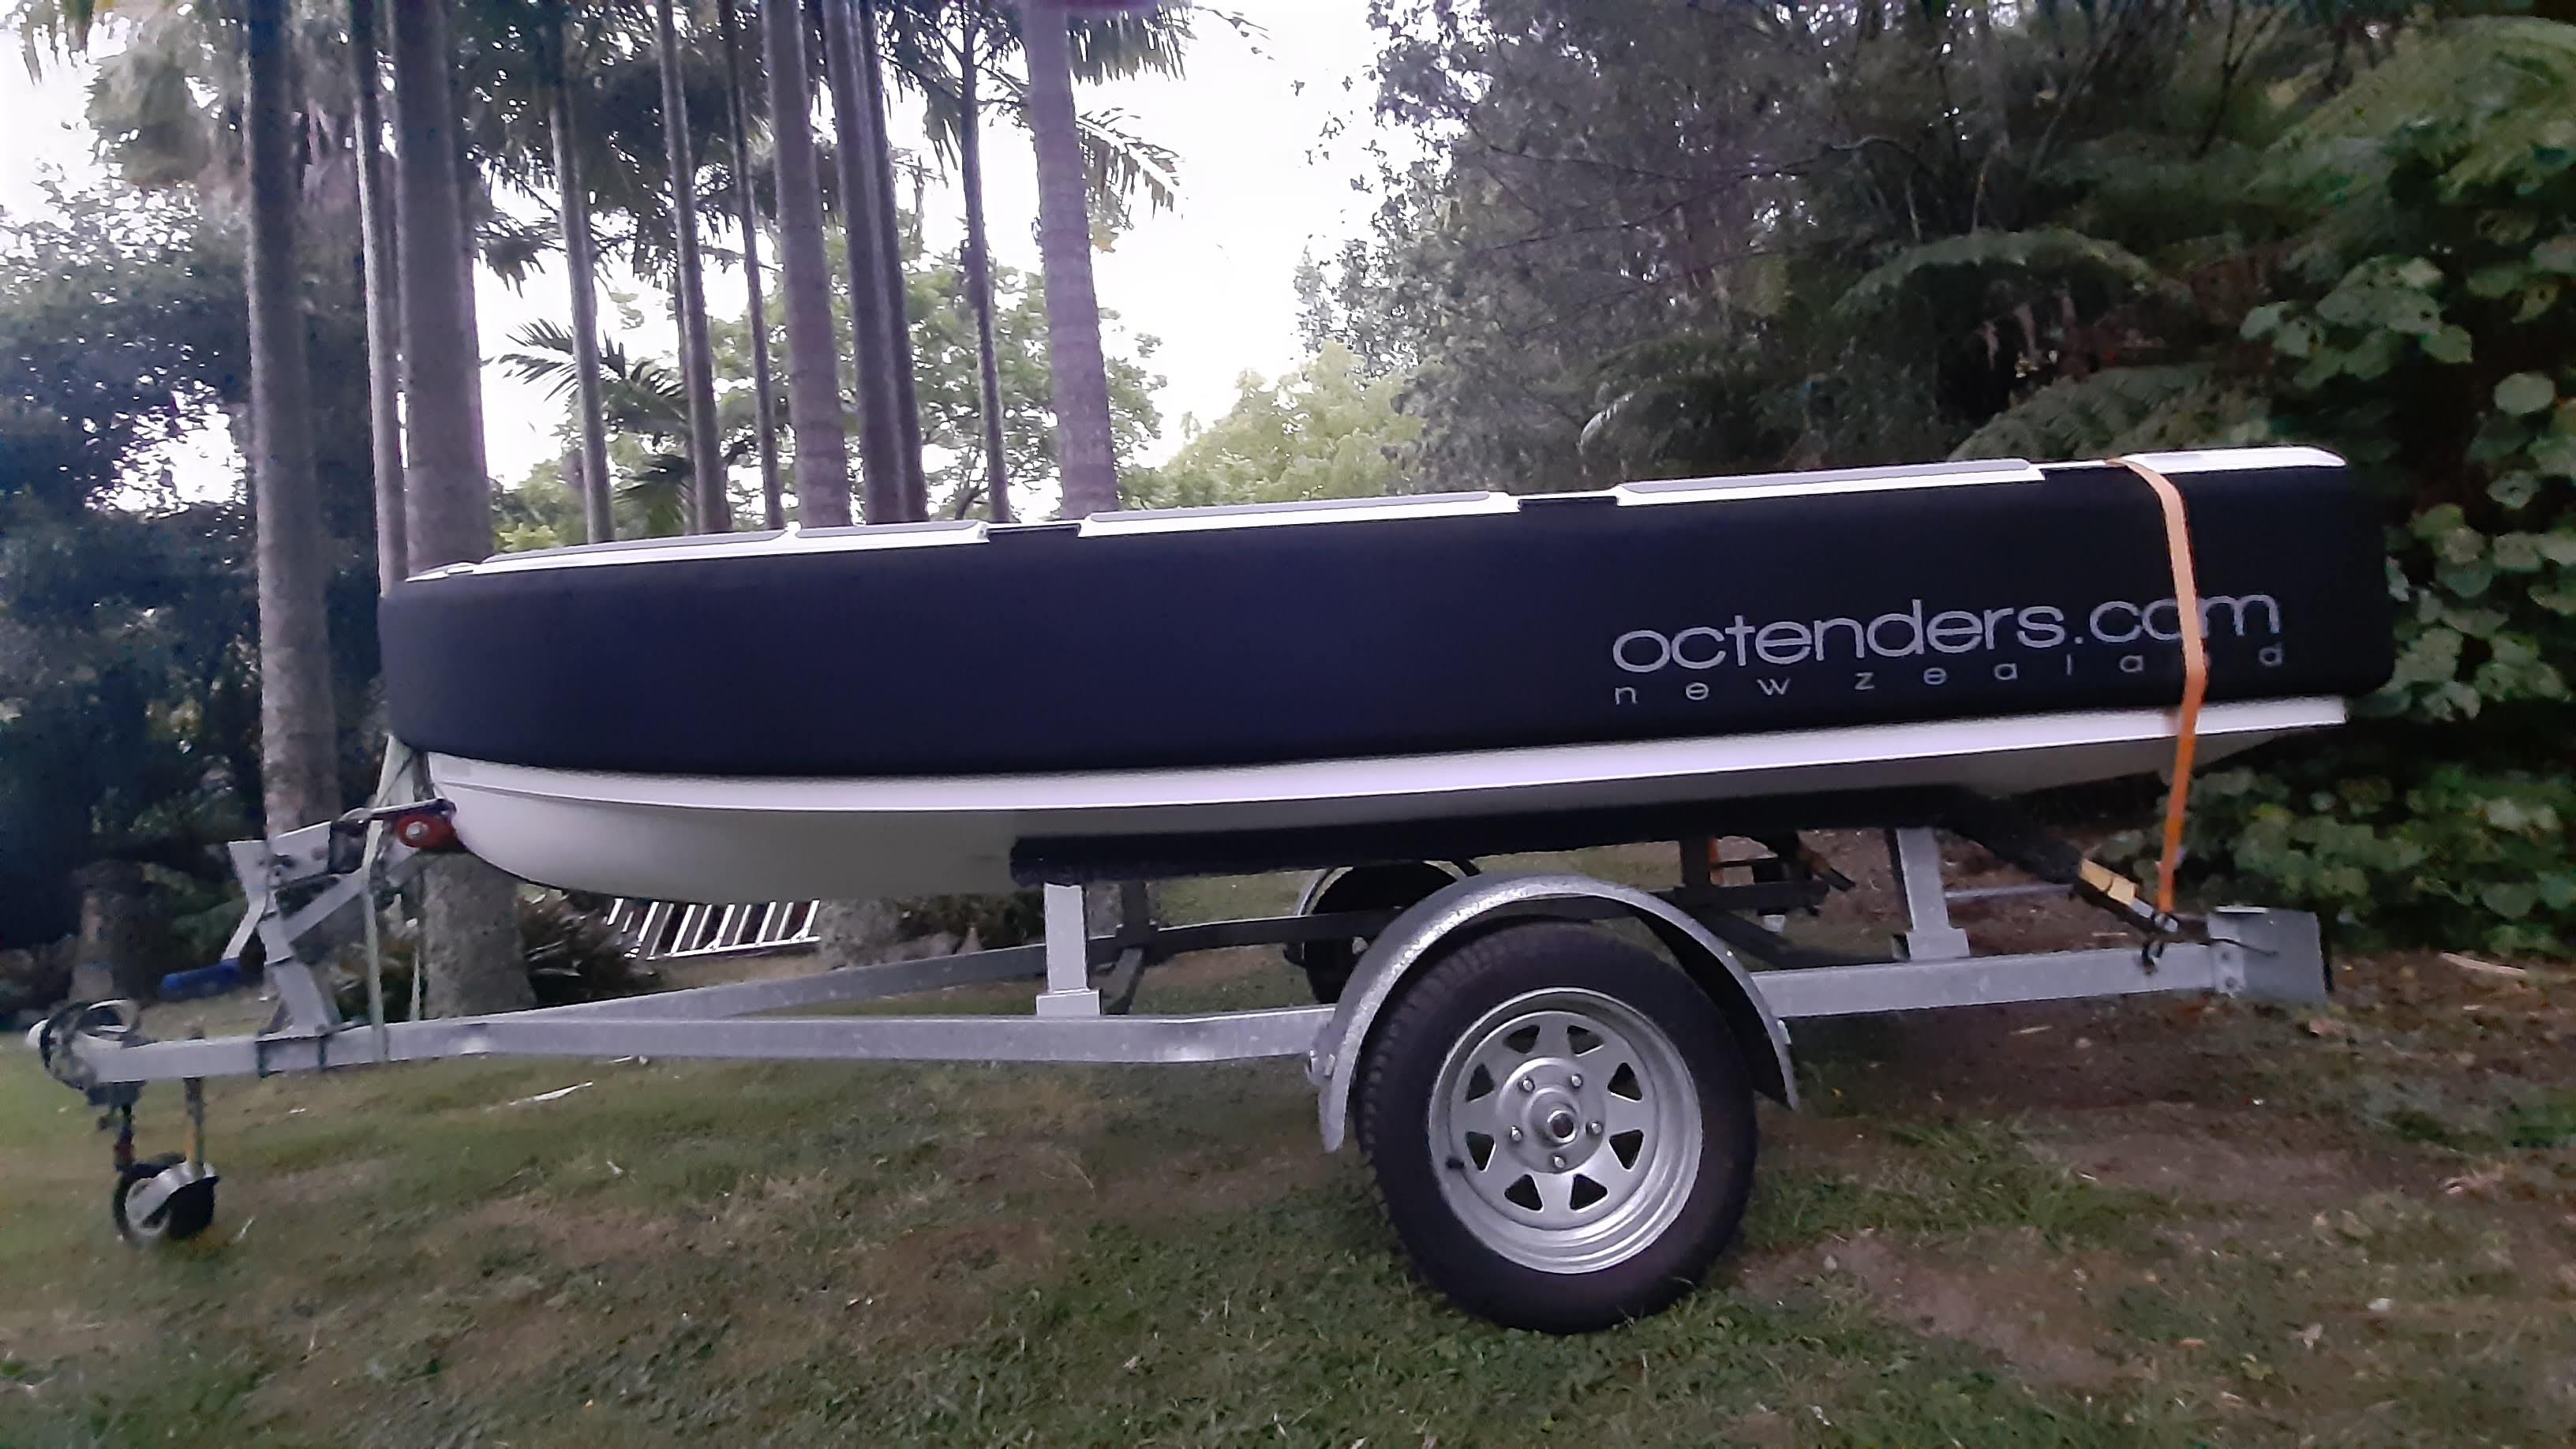 Our tenders are easily fitted into trailers, have a little boat on the go